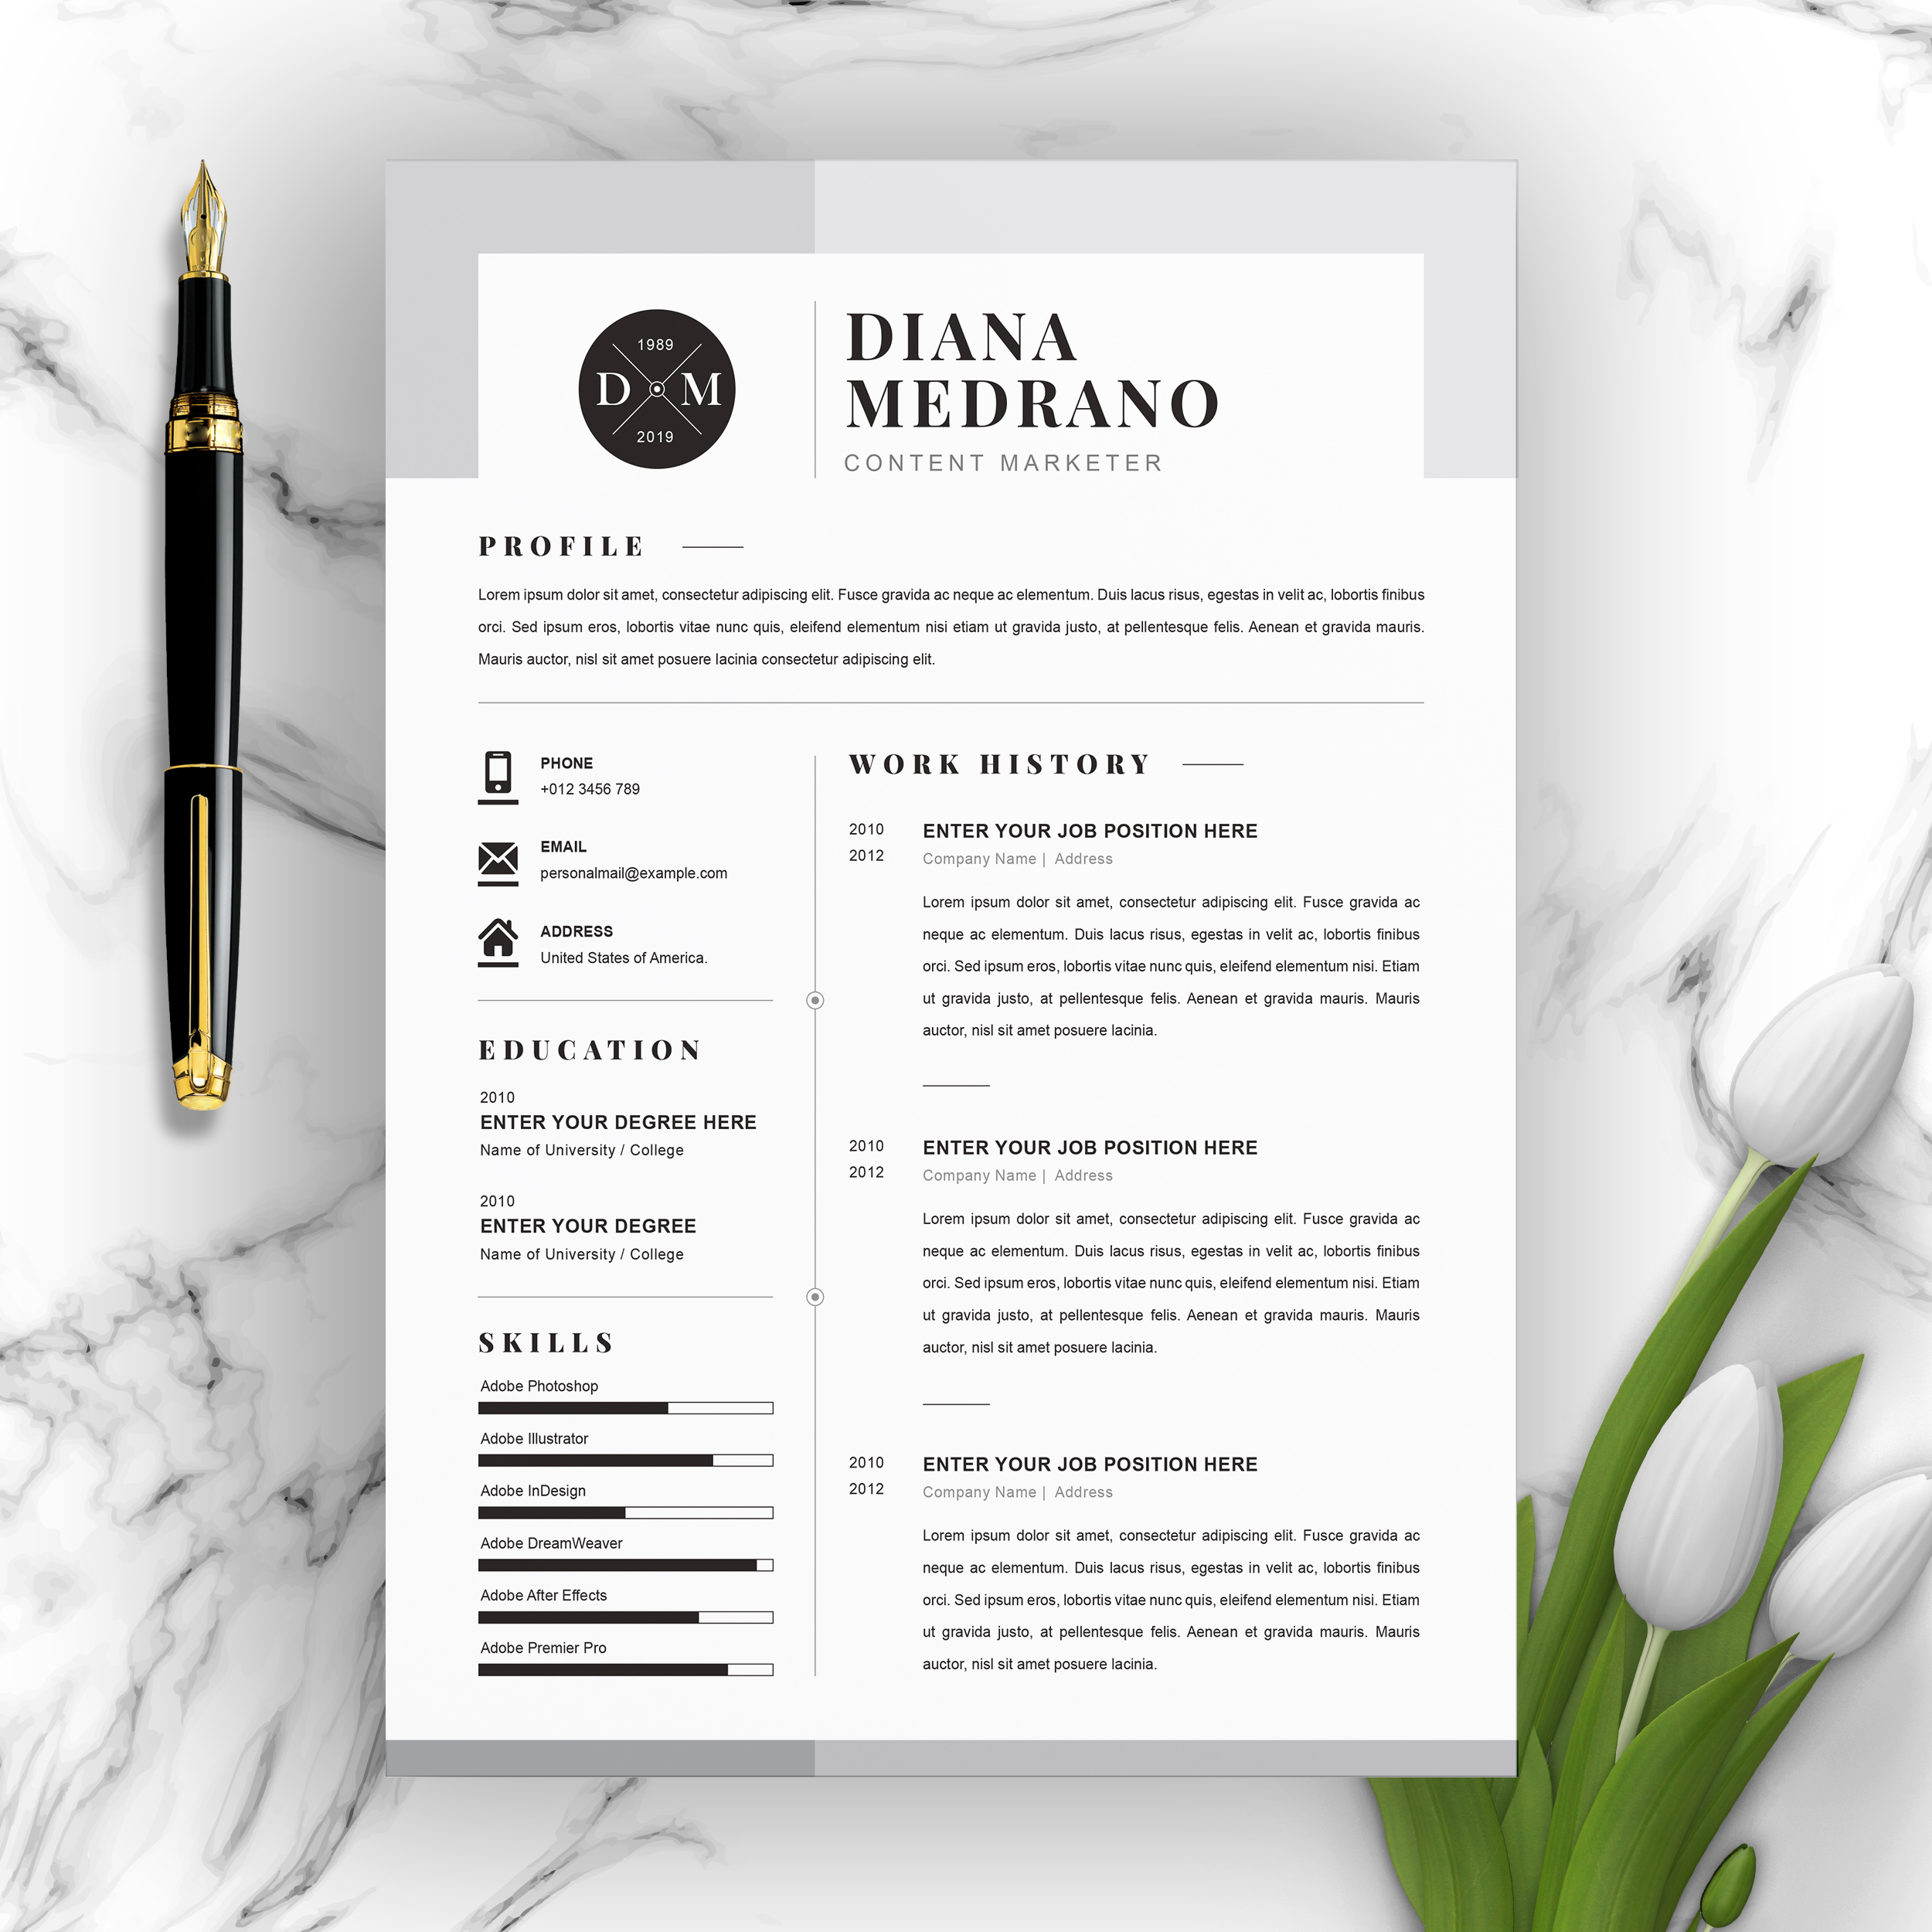 Content Marketer Resume 2021